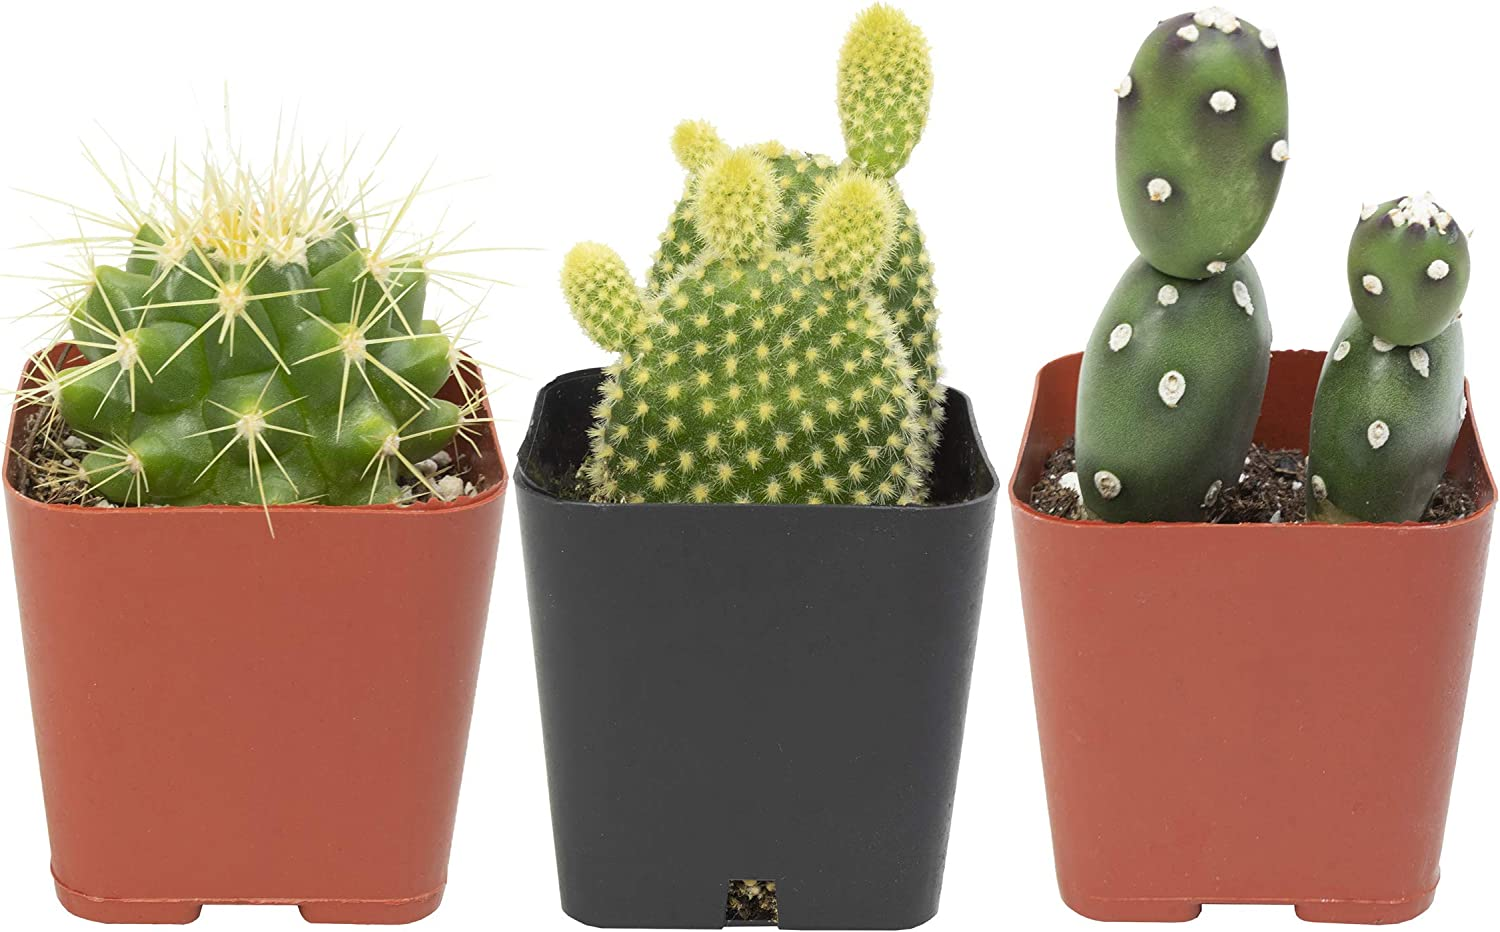 Shipping included Cactus Plants Mix of 3 Cact Live in Ranking integrated 1st place Mammillaria